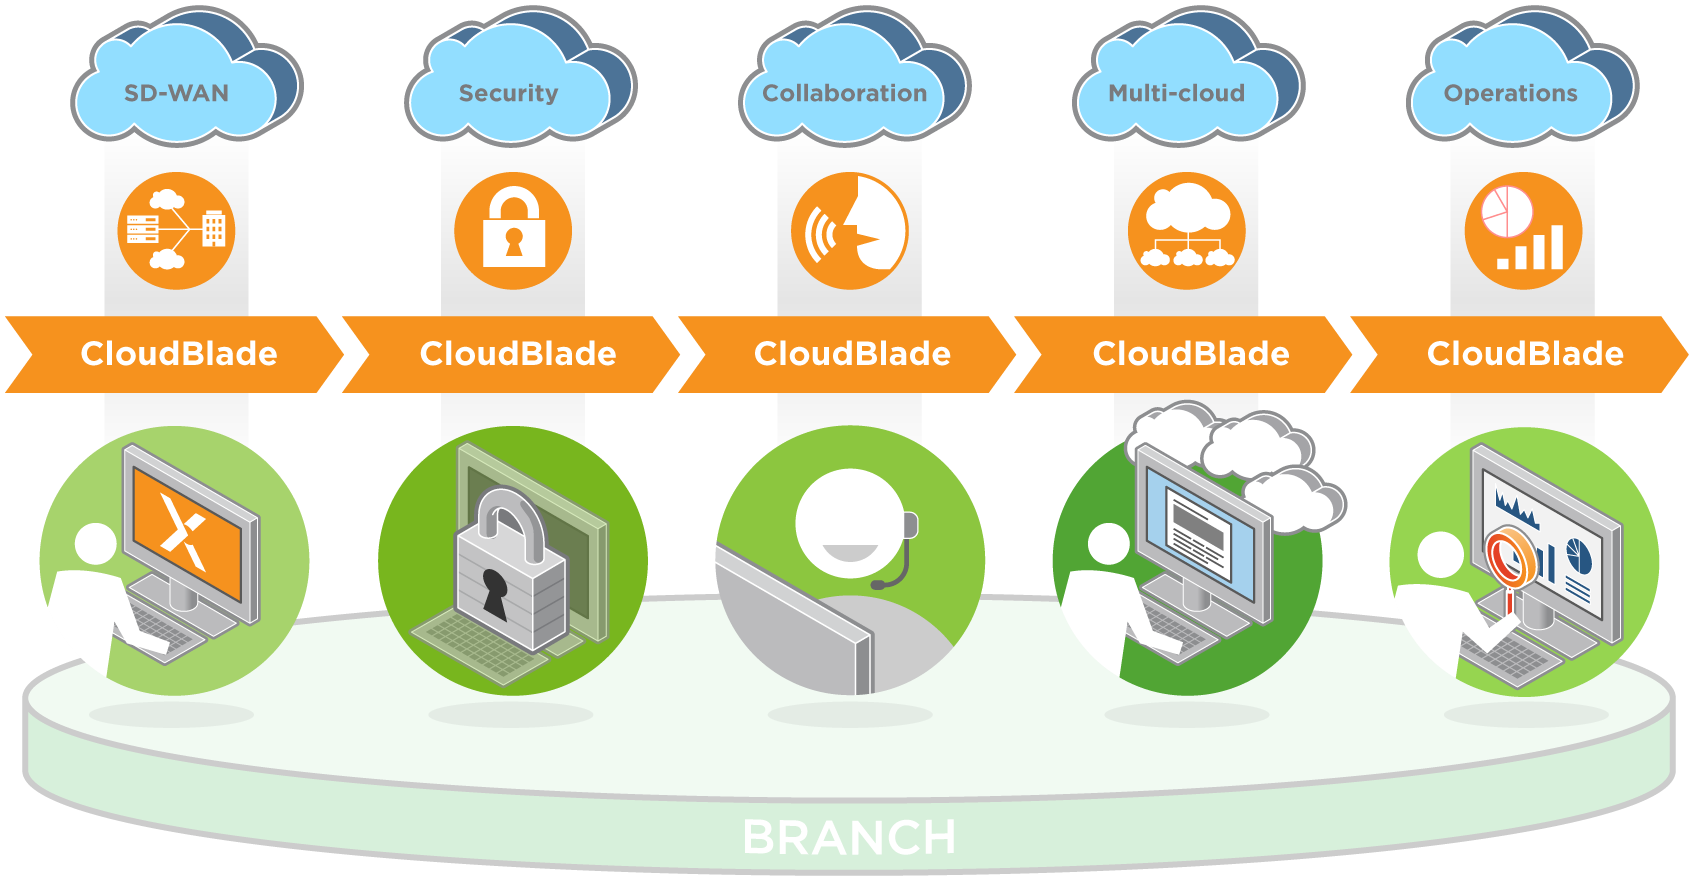 The diagram illustrates how CloudGenix CloudBlades can help organizations deliver best-of-breed infrastructure in areas including SD-WAN, security, collaboration, multi-cloud and operations.